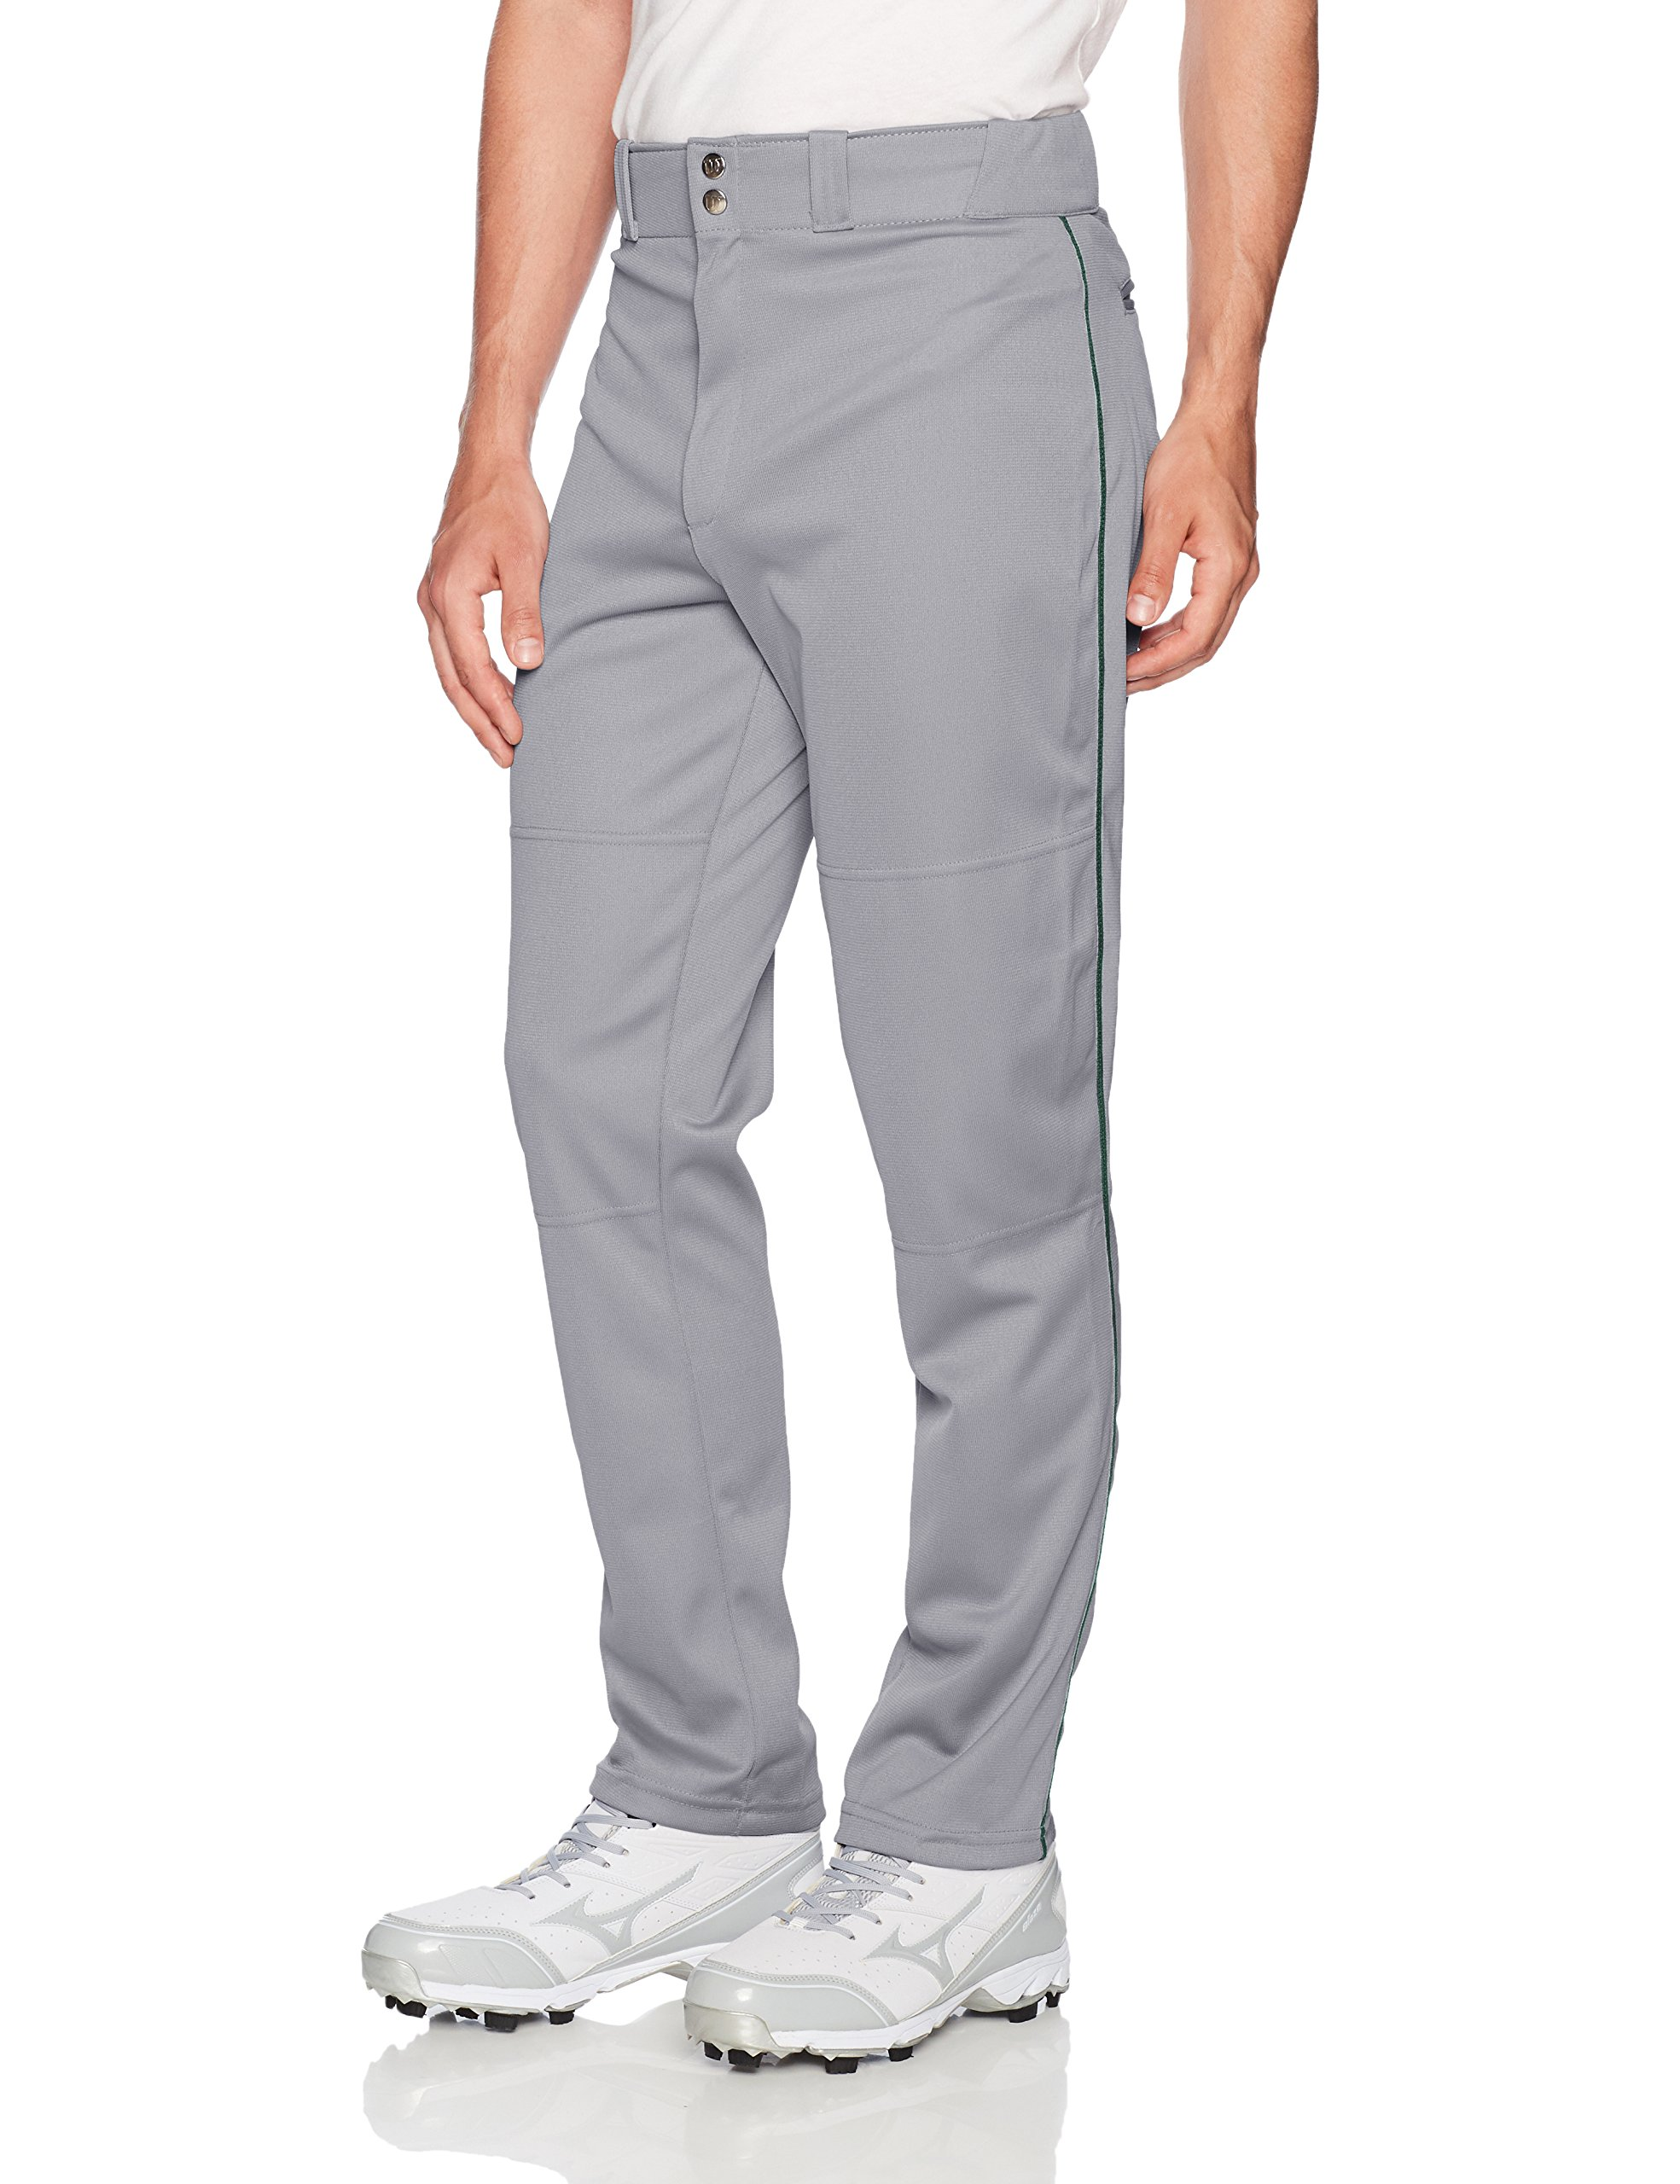 Wilson Men's Classic Relaxed Fit Piped Baseball Pant, Grey/Dark Green, Medium by Wilson